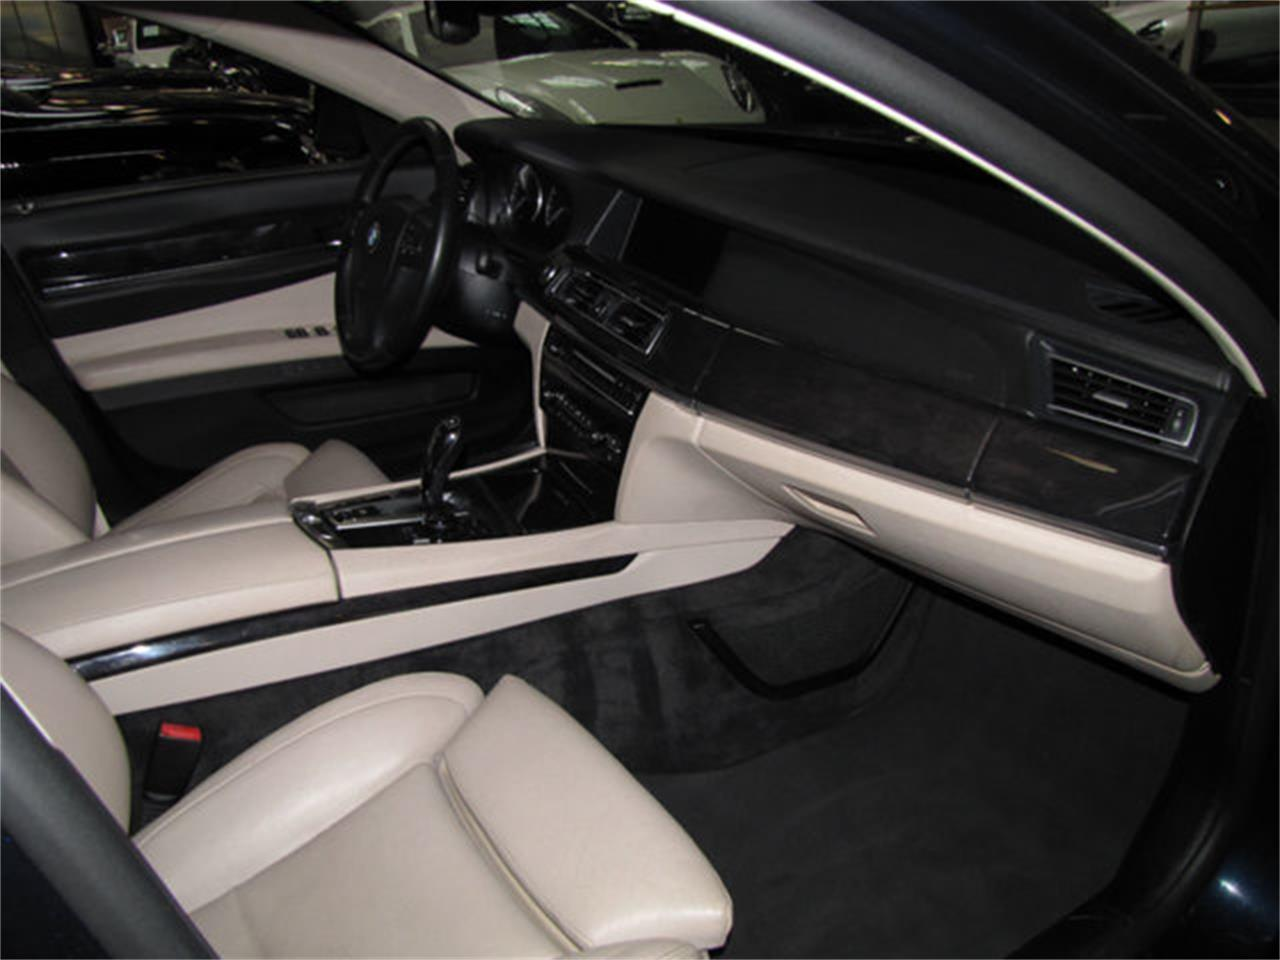 2011 BMW 7 Series (CC-1179199) for sale in Hollywood, California